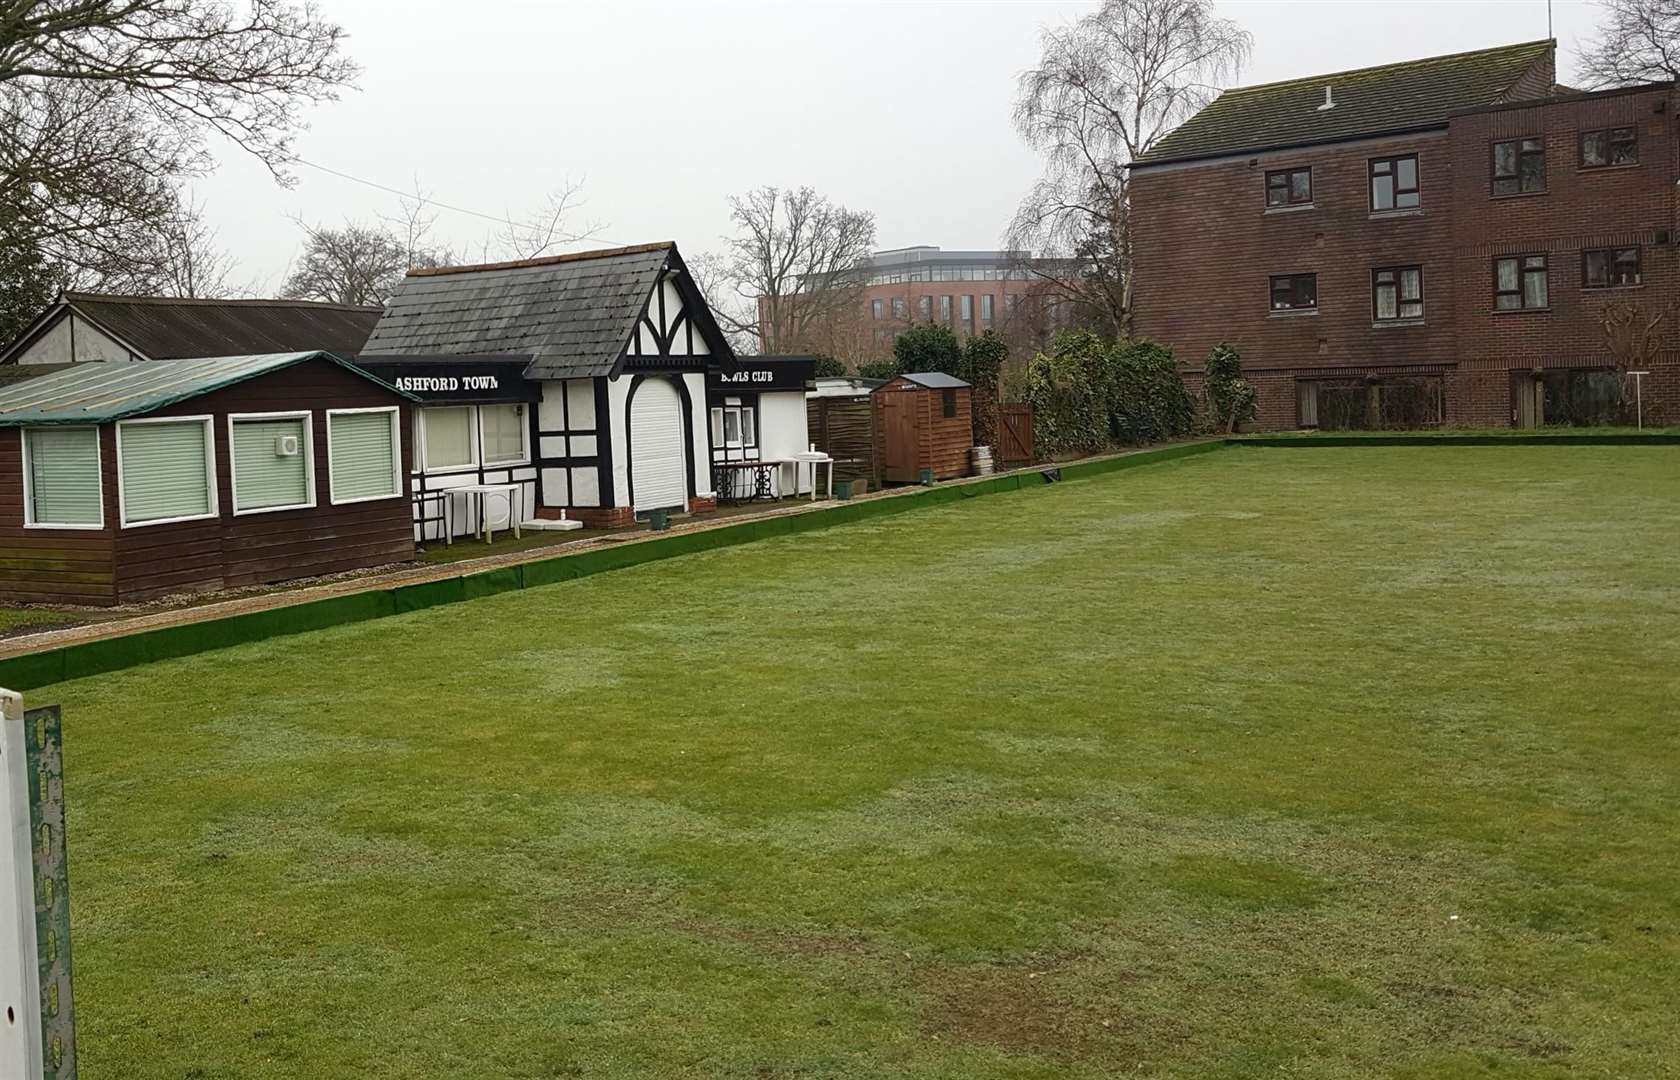 The planning application provides a new home for Ashford Town Bowls Club